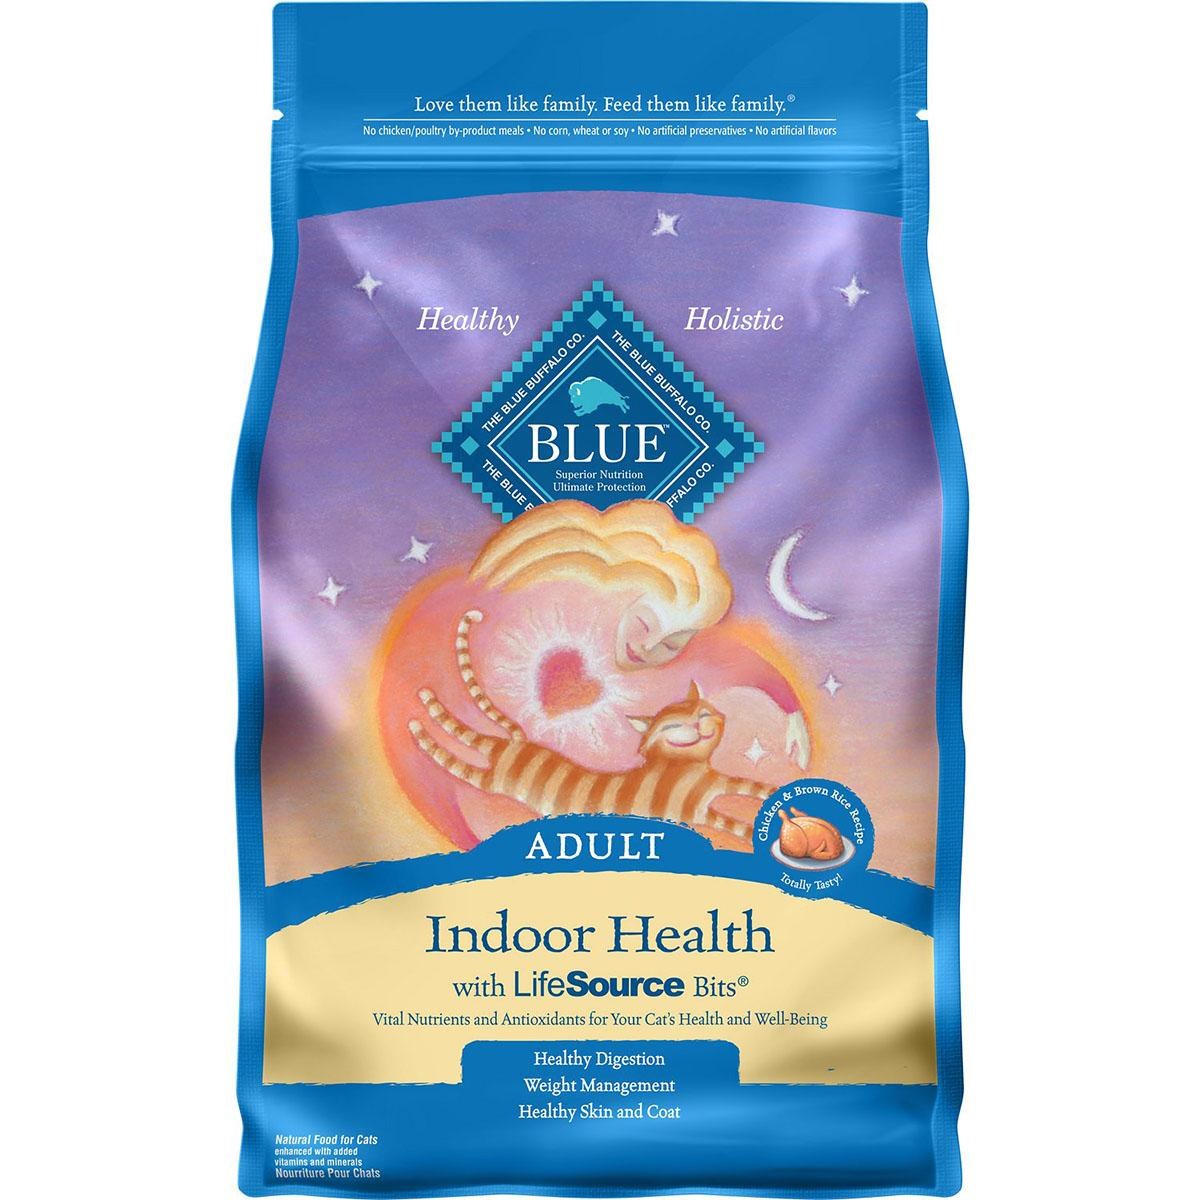 BaxterBoo – Blue Buffalo Indoor Health Chicken & Brown Rice Adult Dry Cat Food